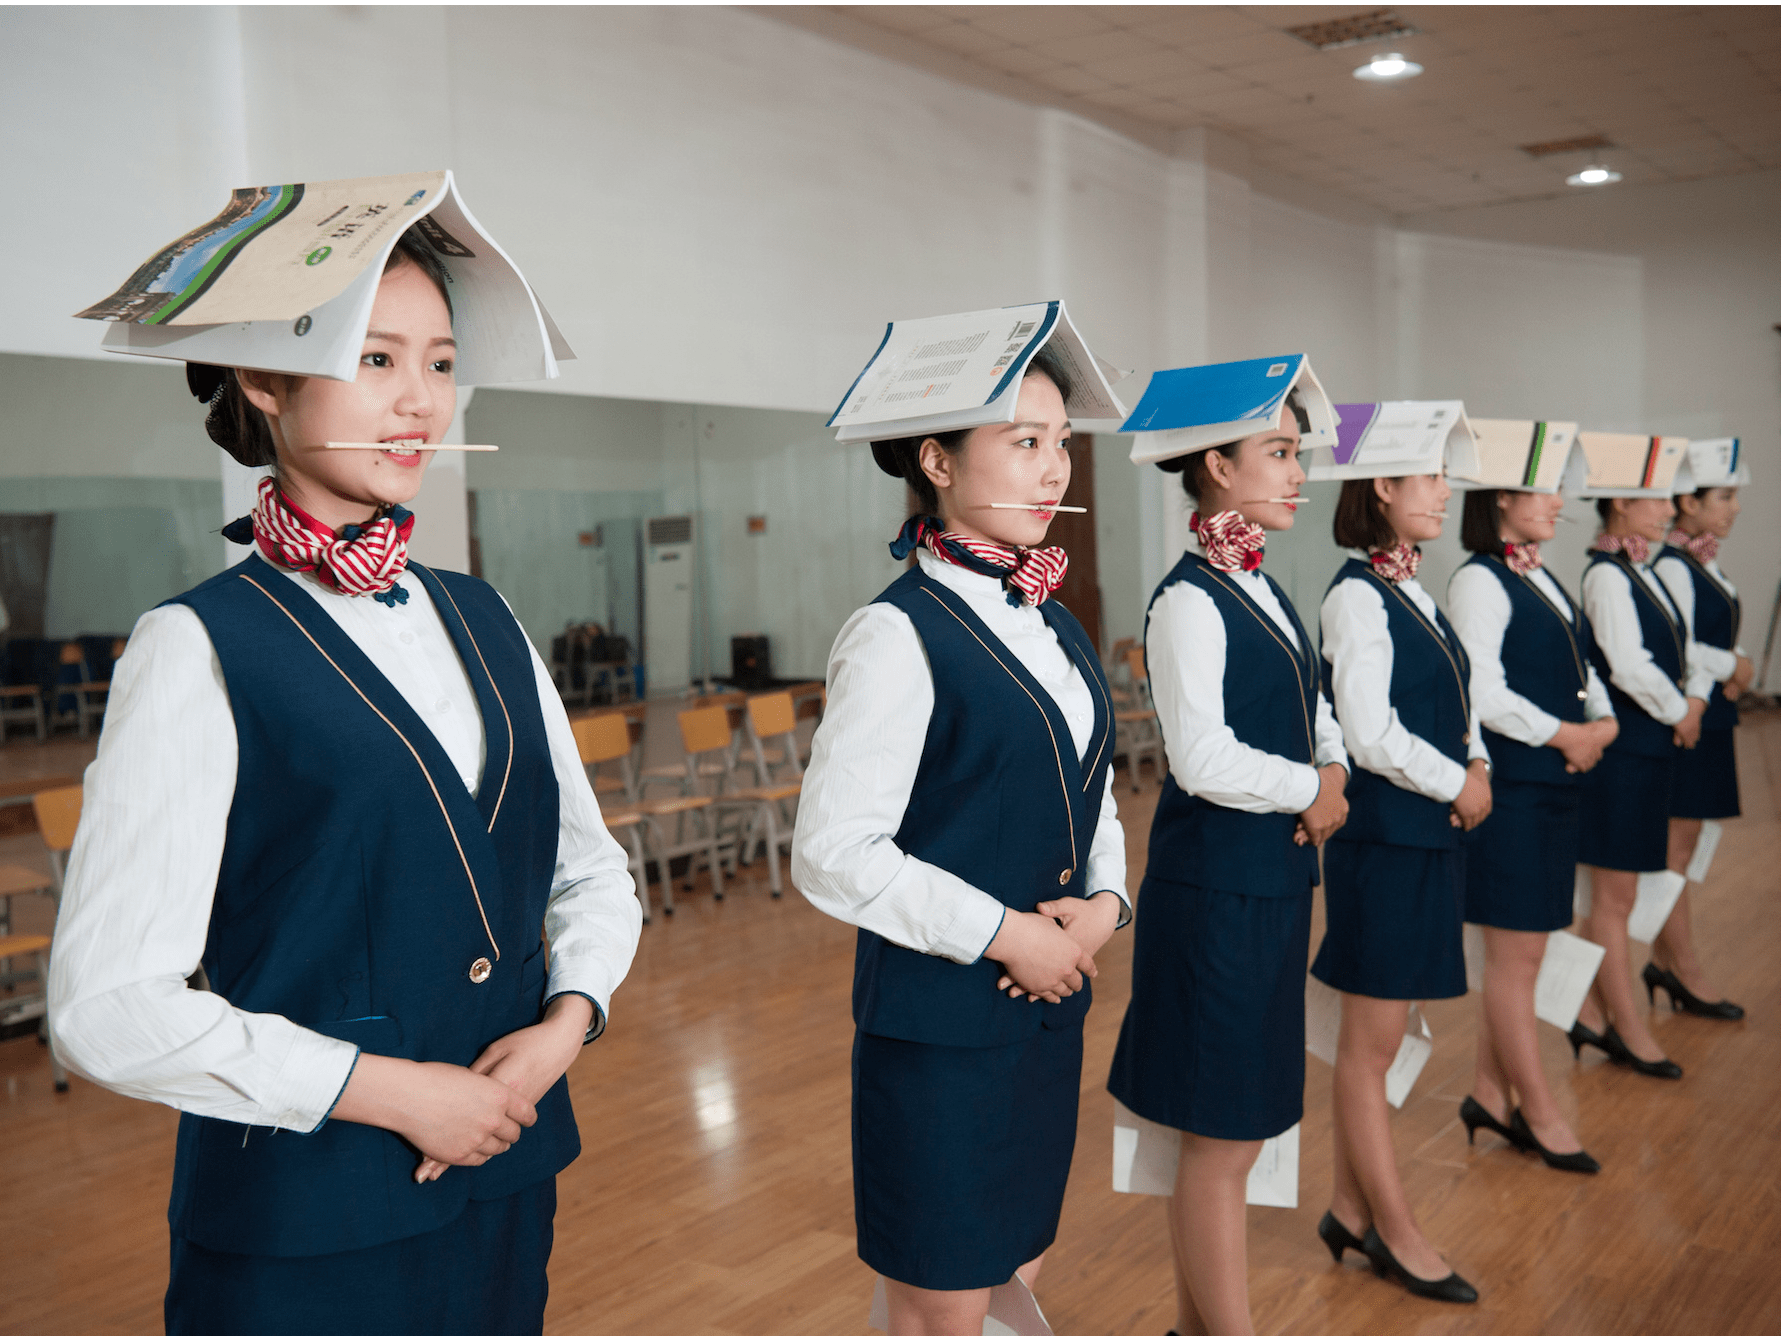 Flight attendents